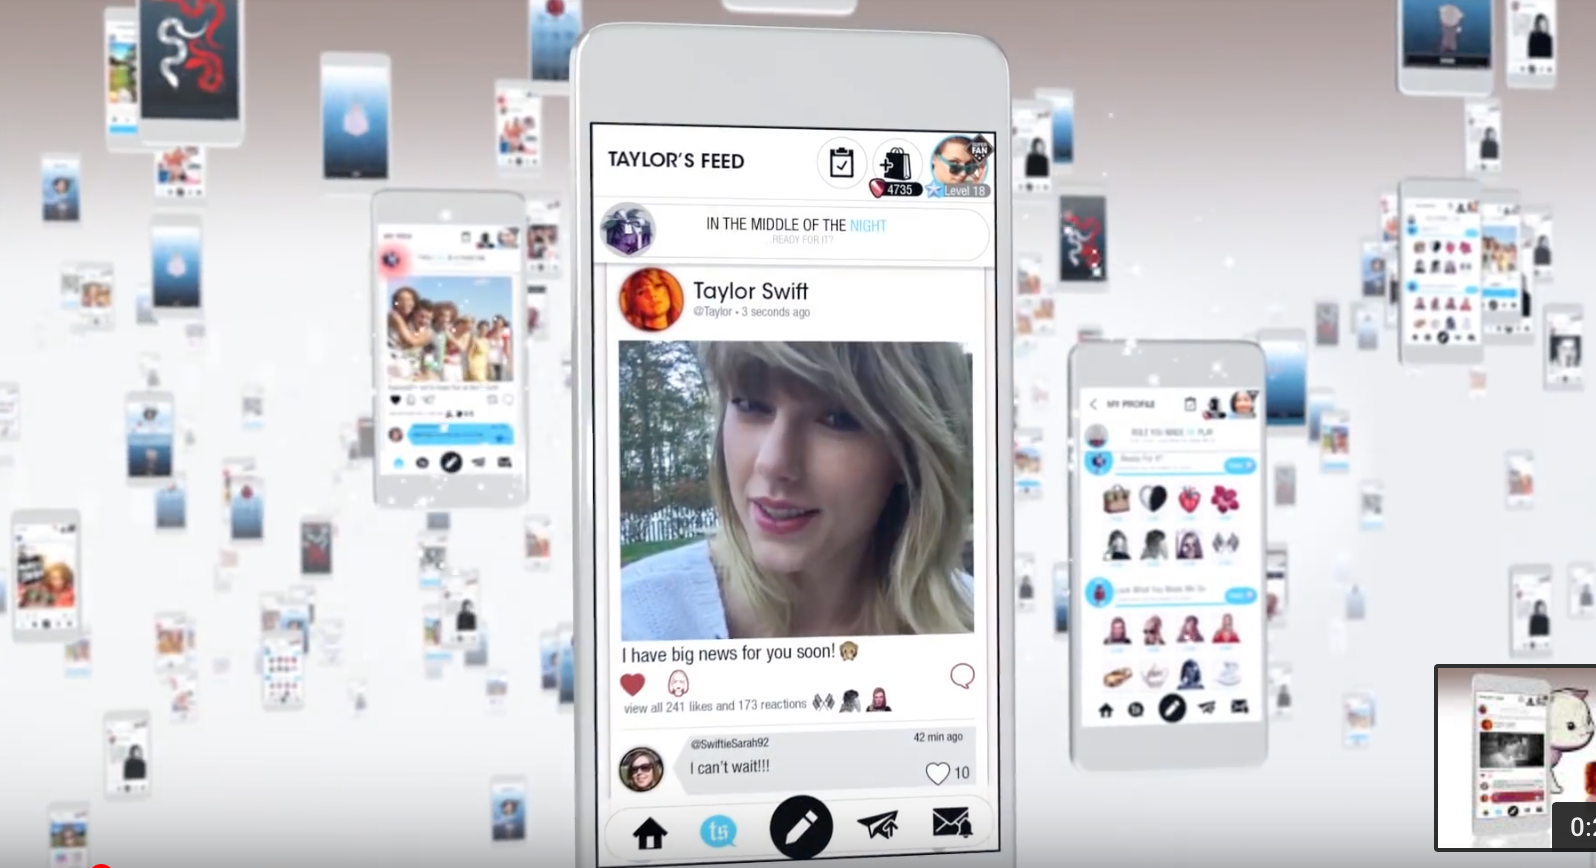 The_Swift_Life Taylor Swift app